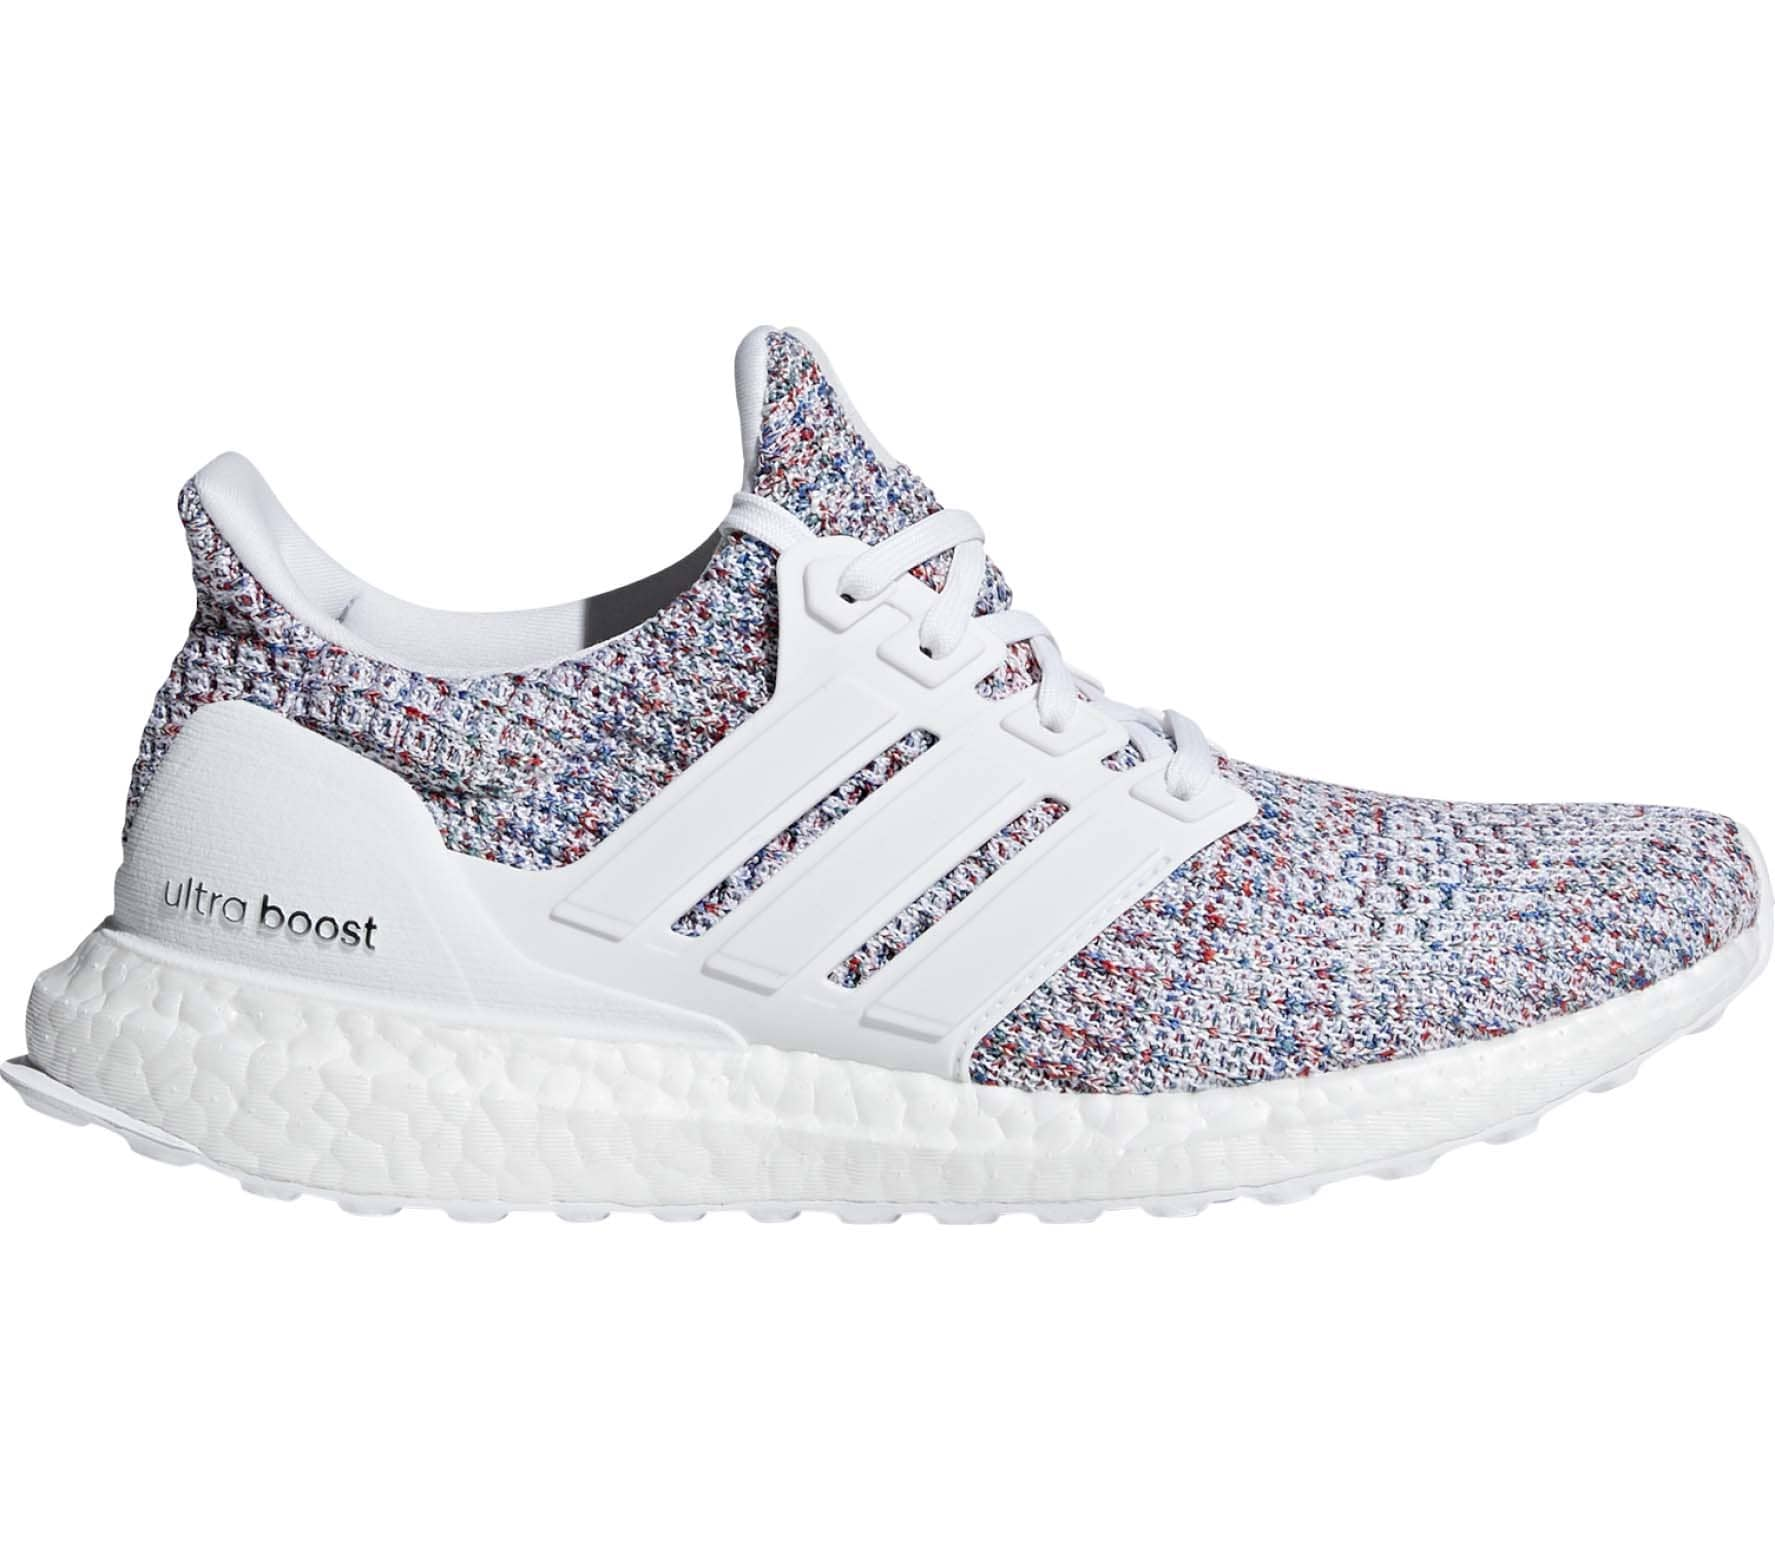 adidas - Ultraboost women s running shoes (multicolour white) - buy ... fd1060d8a